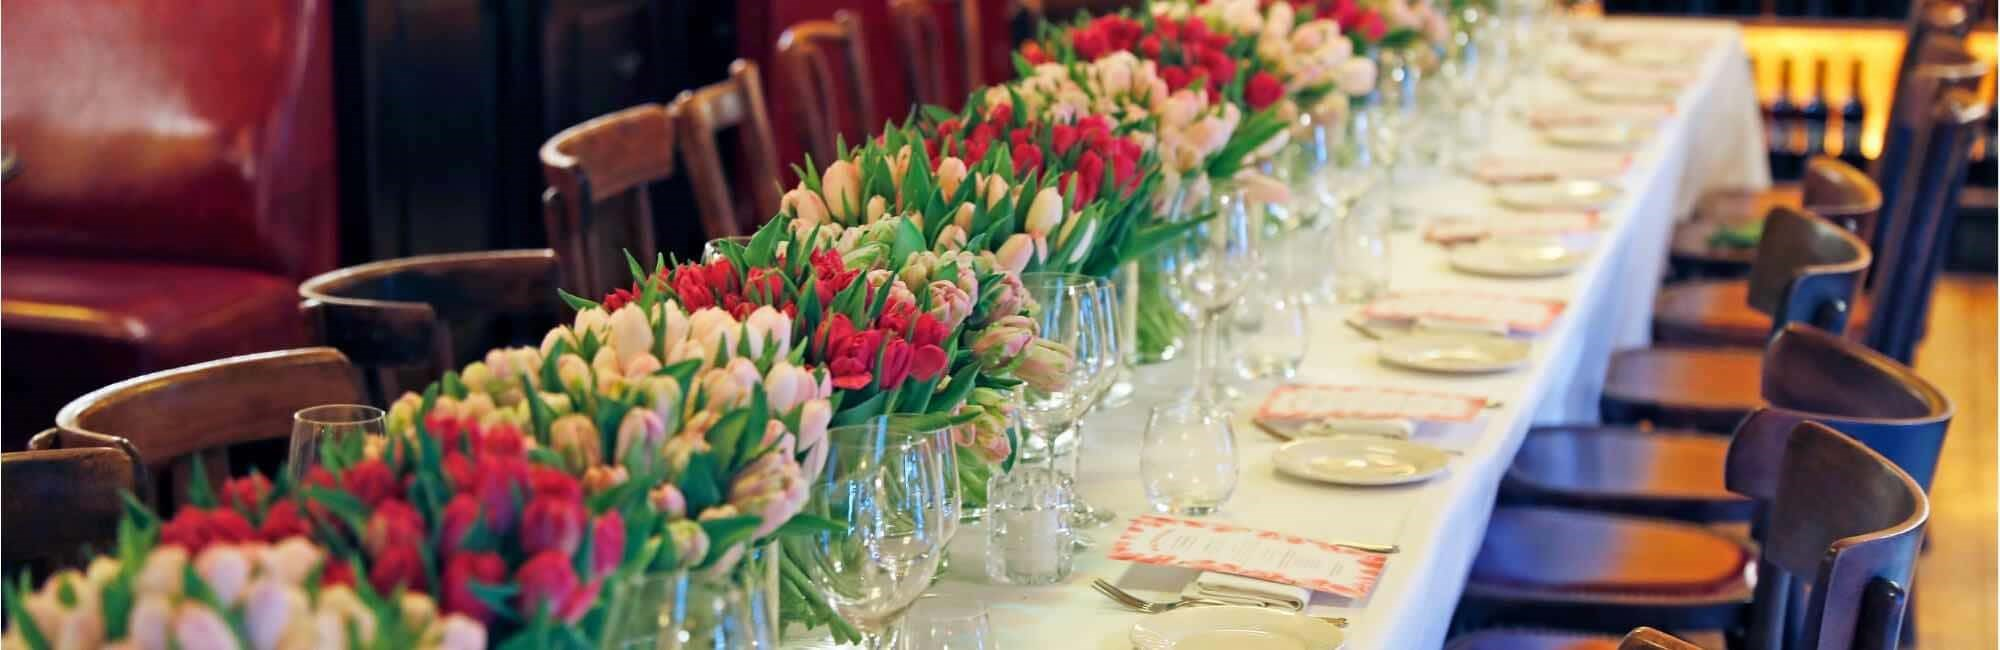 Table with flowers laid for large private dining party